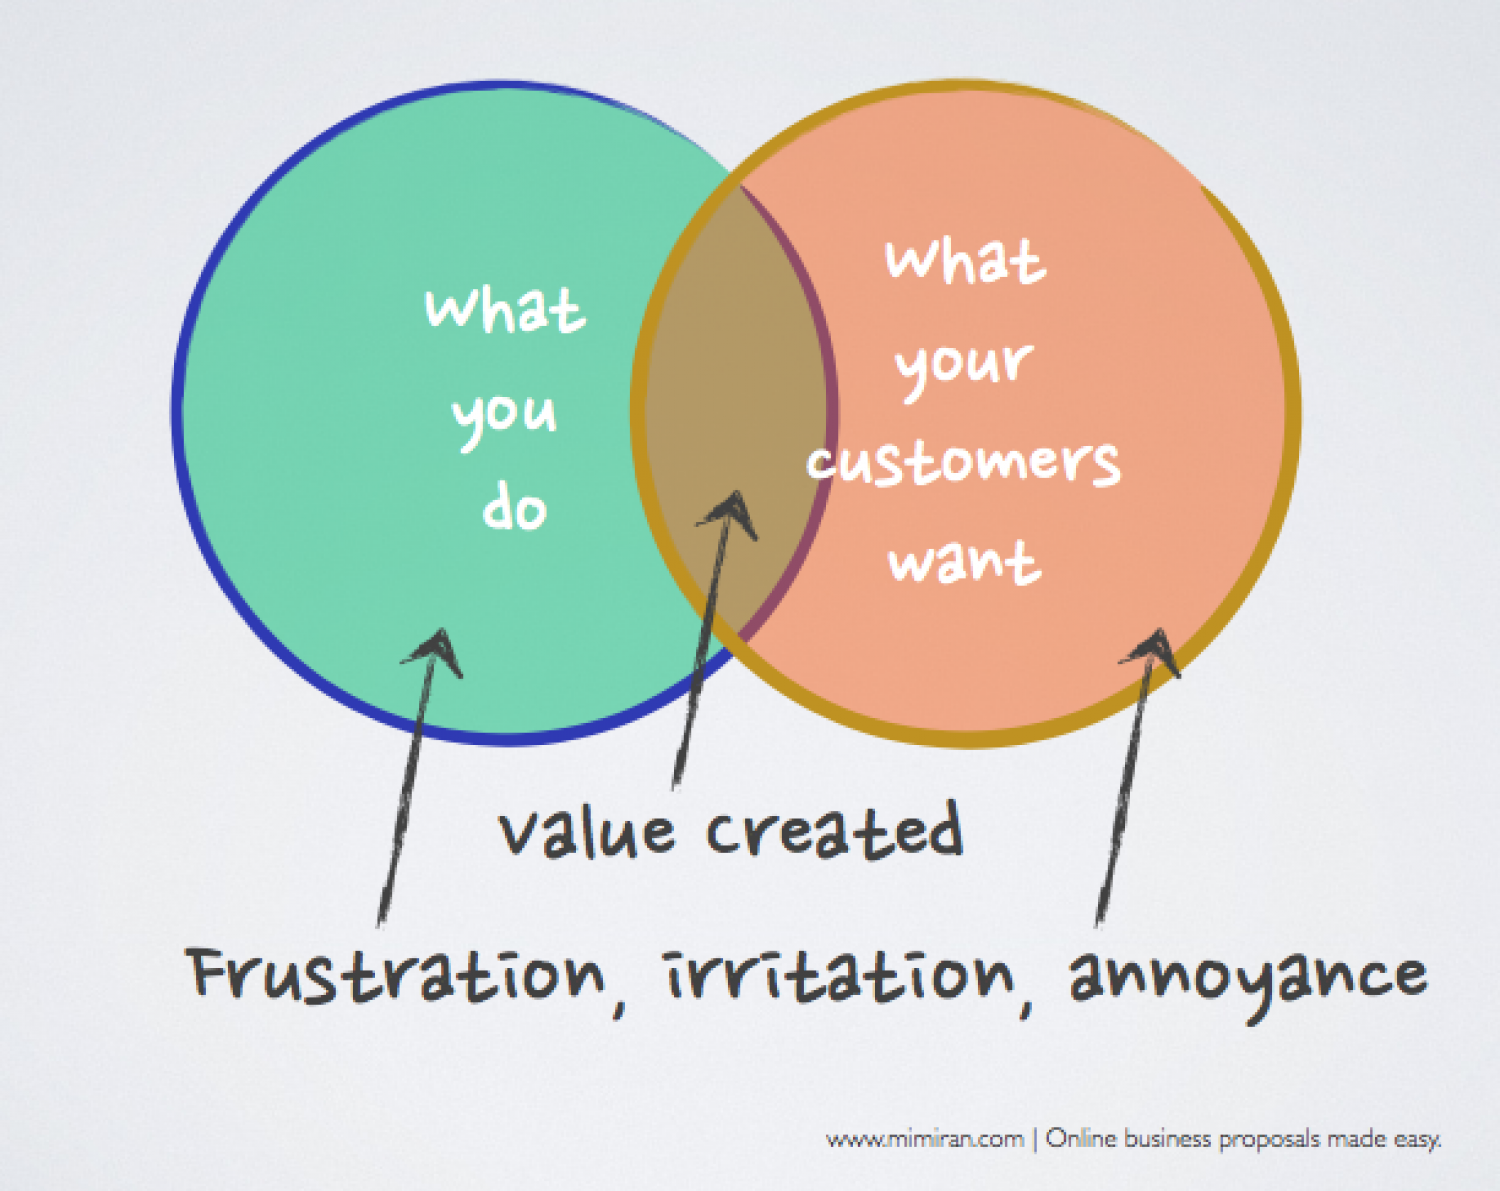 What you do versus what your customers want Venn diagram Infographic